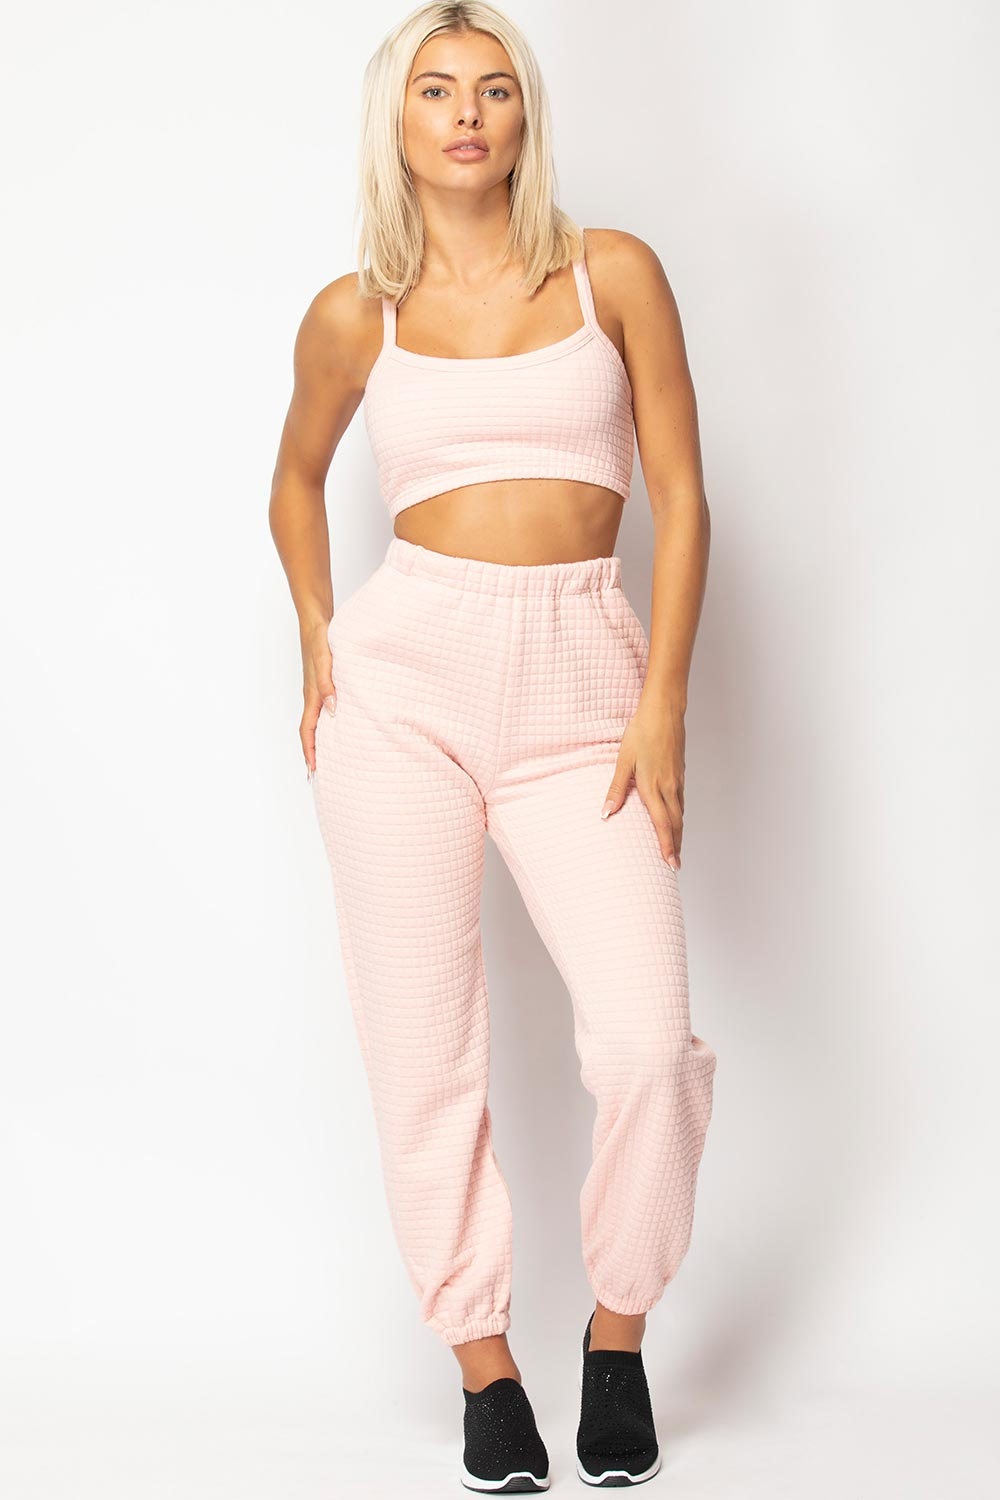 joggers and crop top set pink